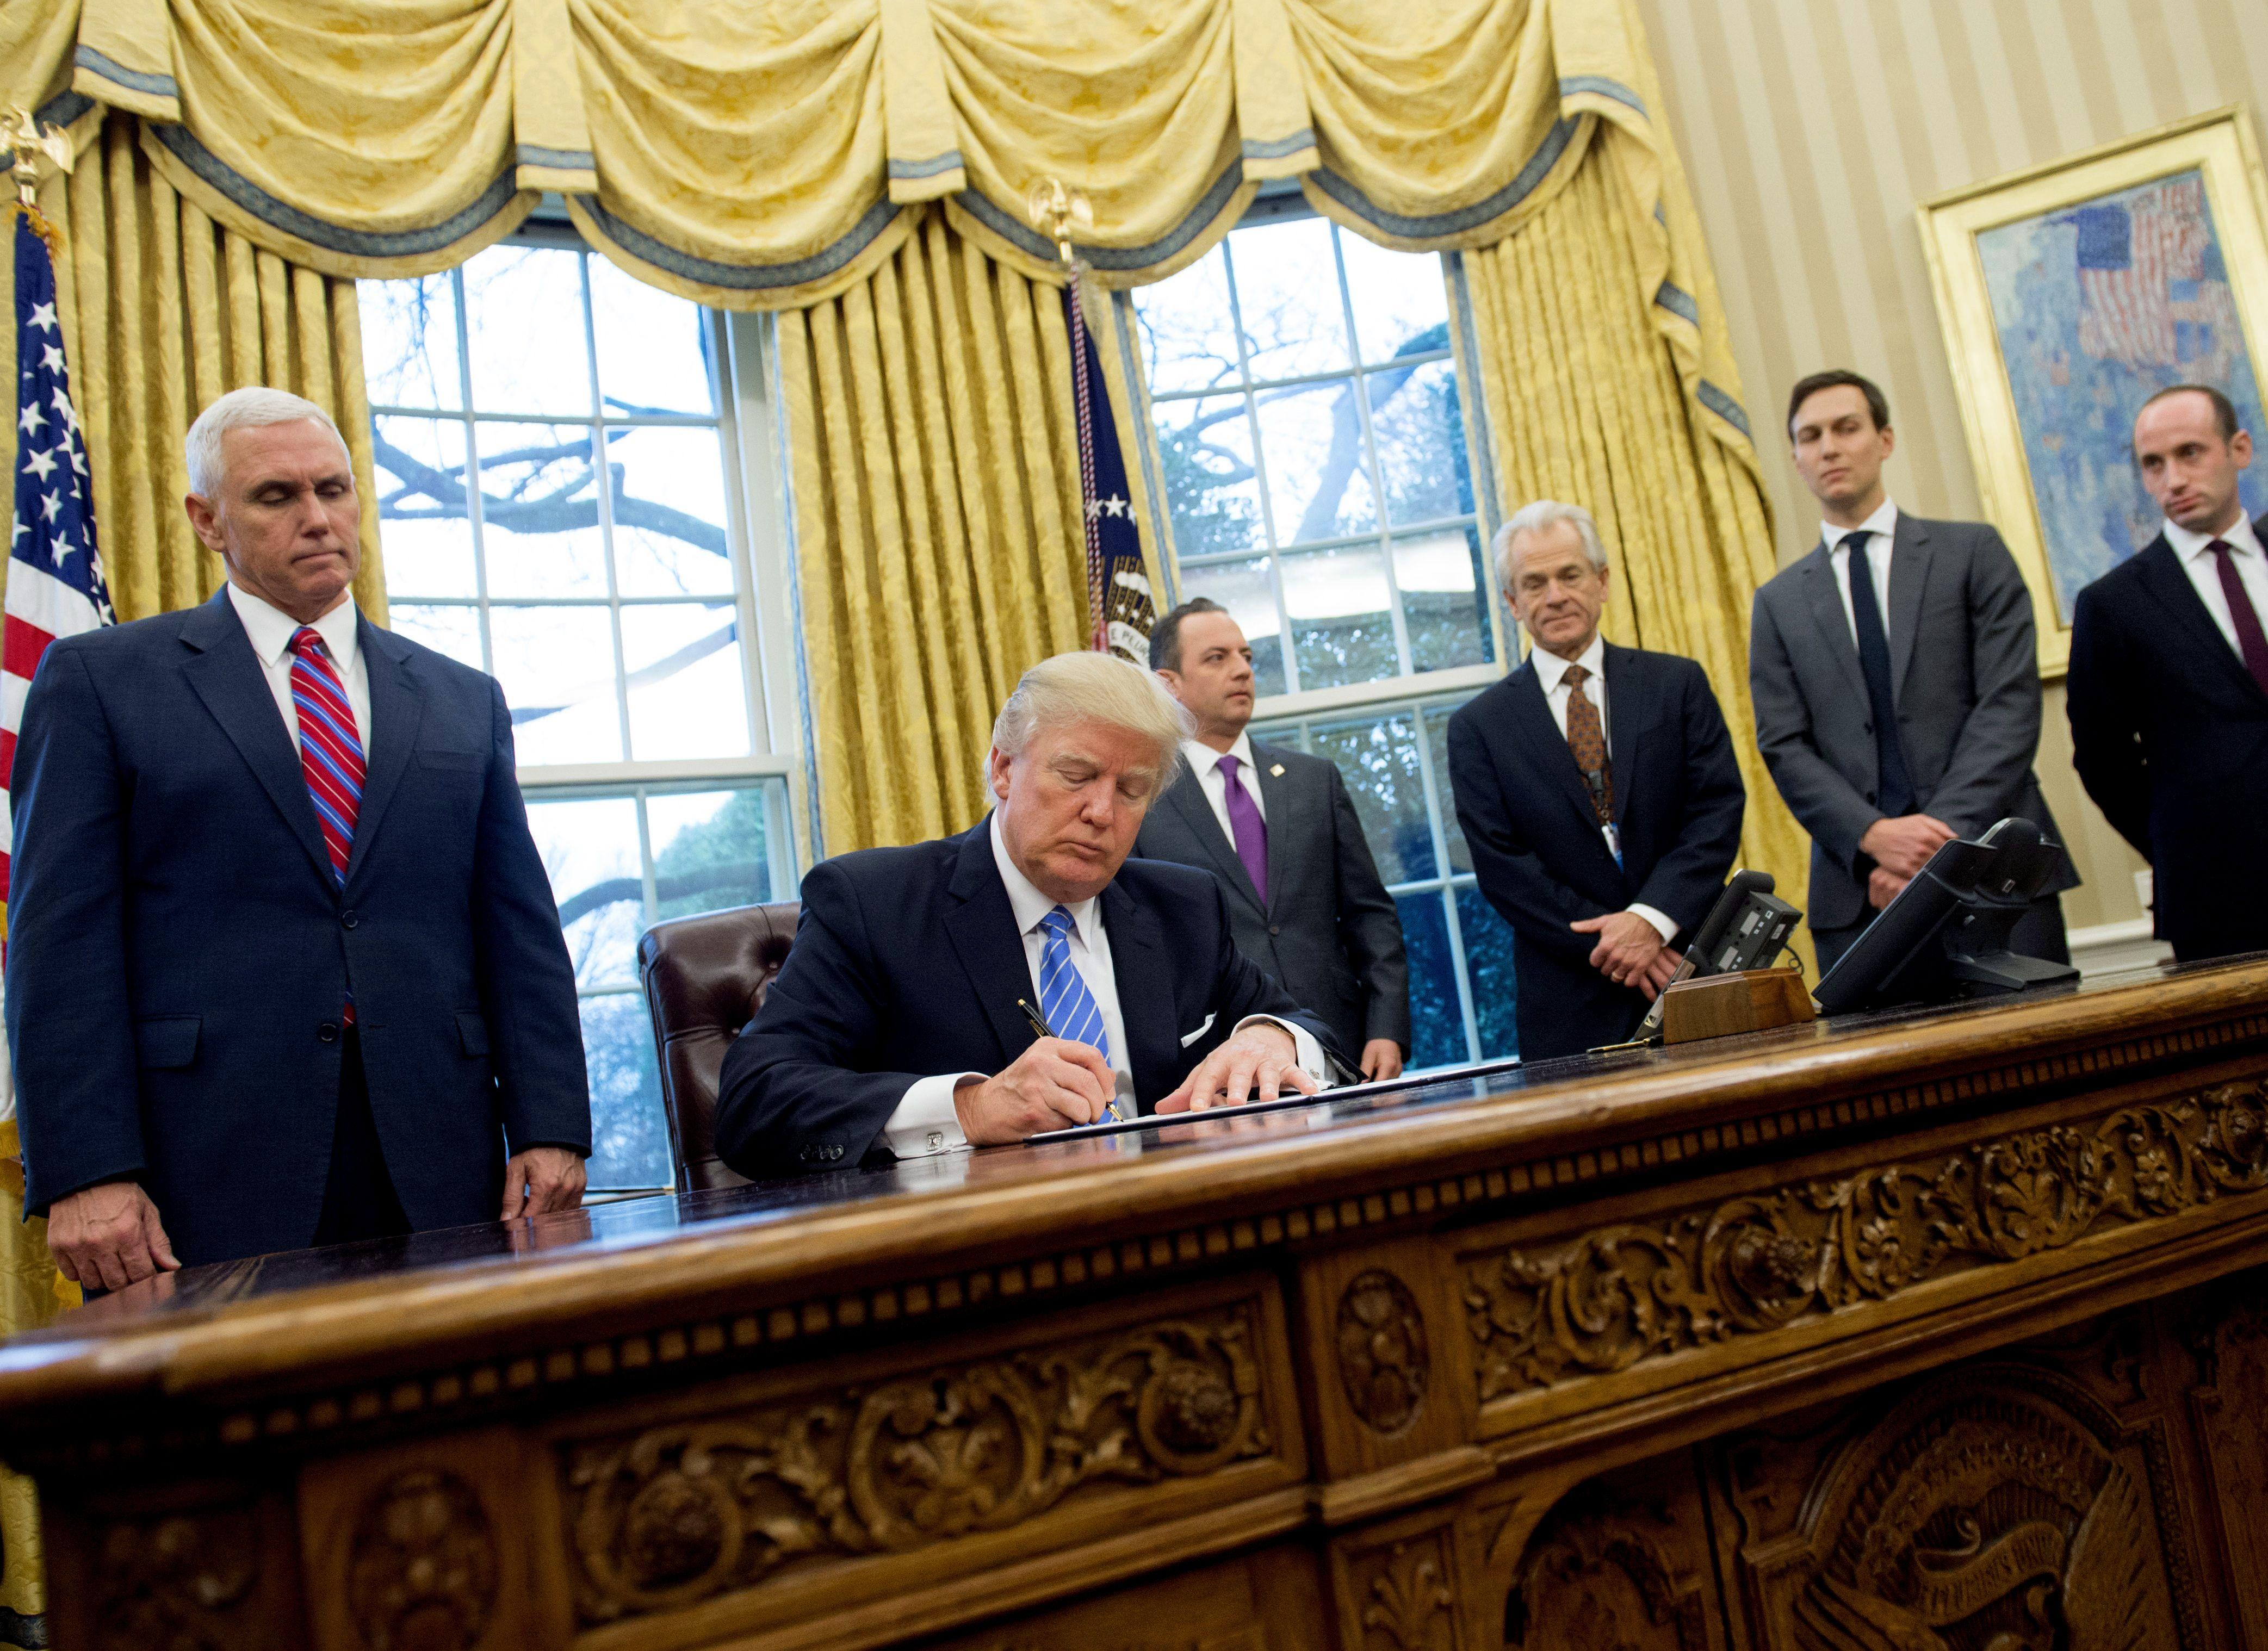 Obama Oval Office Address Not So Much >> How Trump Has Changed The Oval Office So Far Cbs News